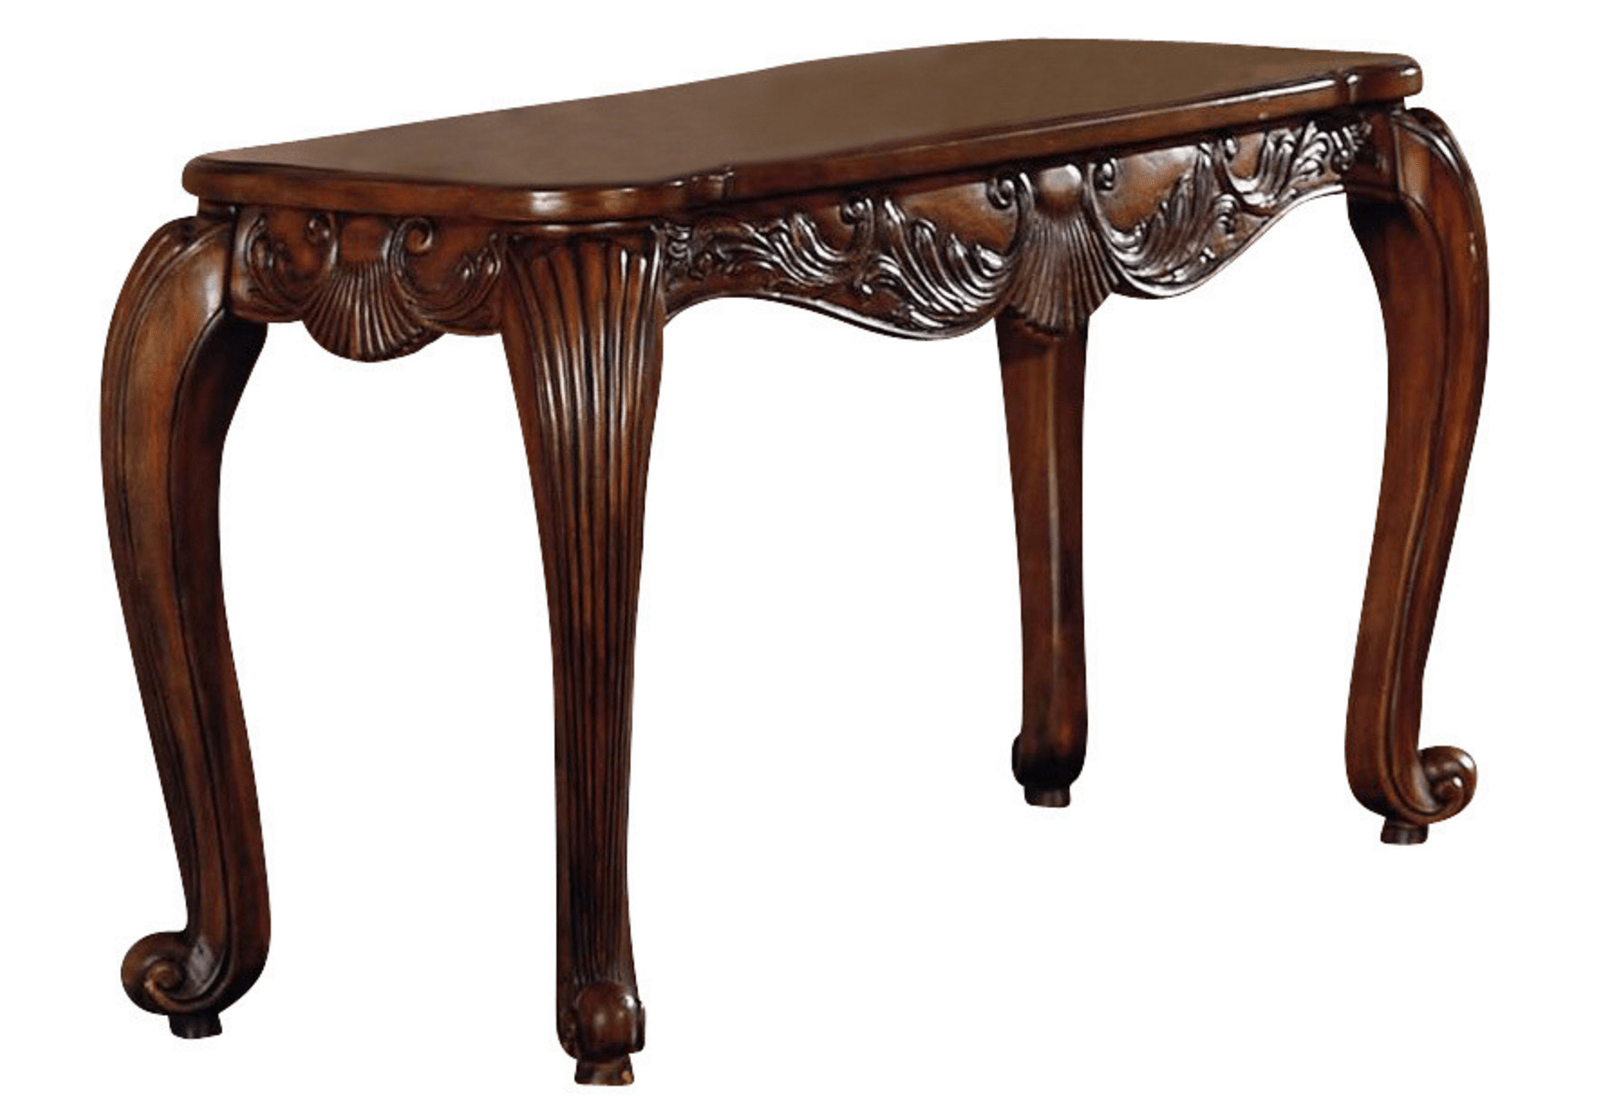 Traditional Carved Wood Console Sofa Table W/ Cabriole